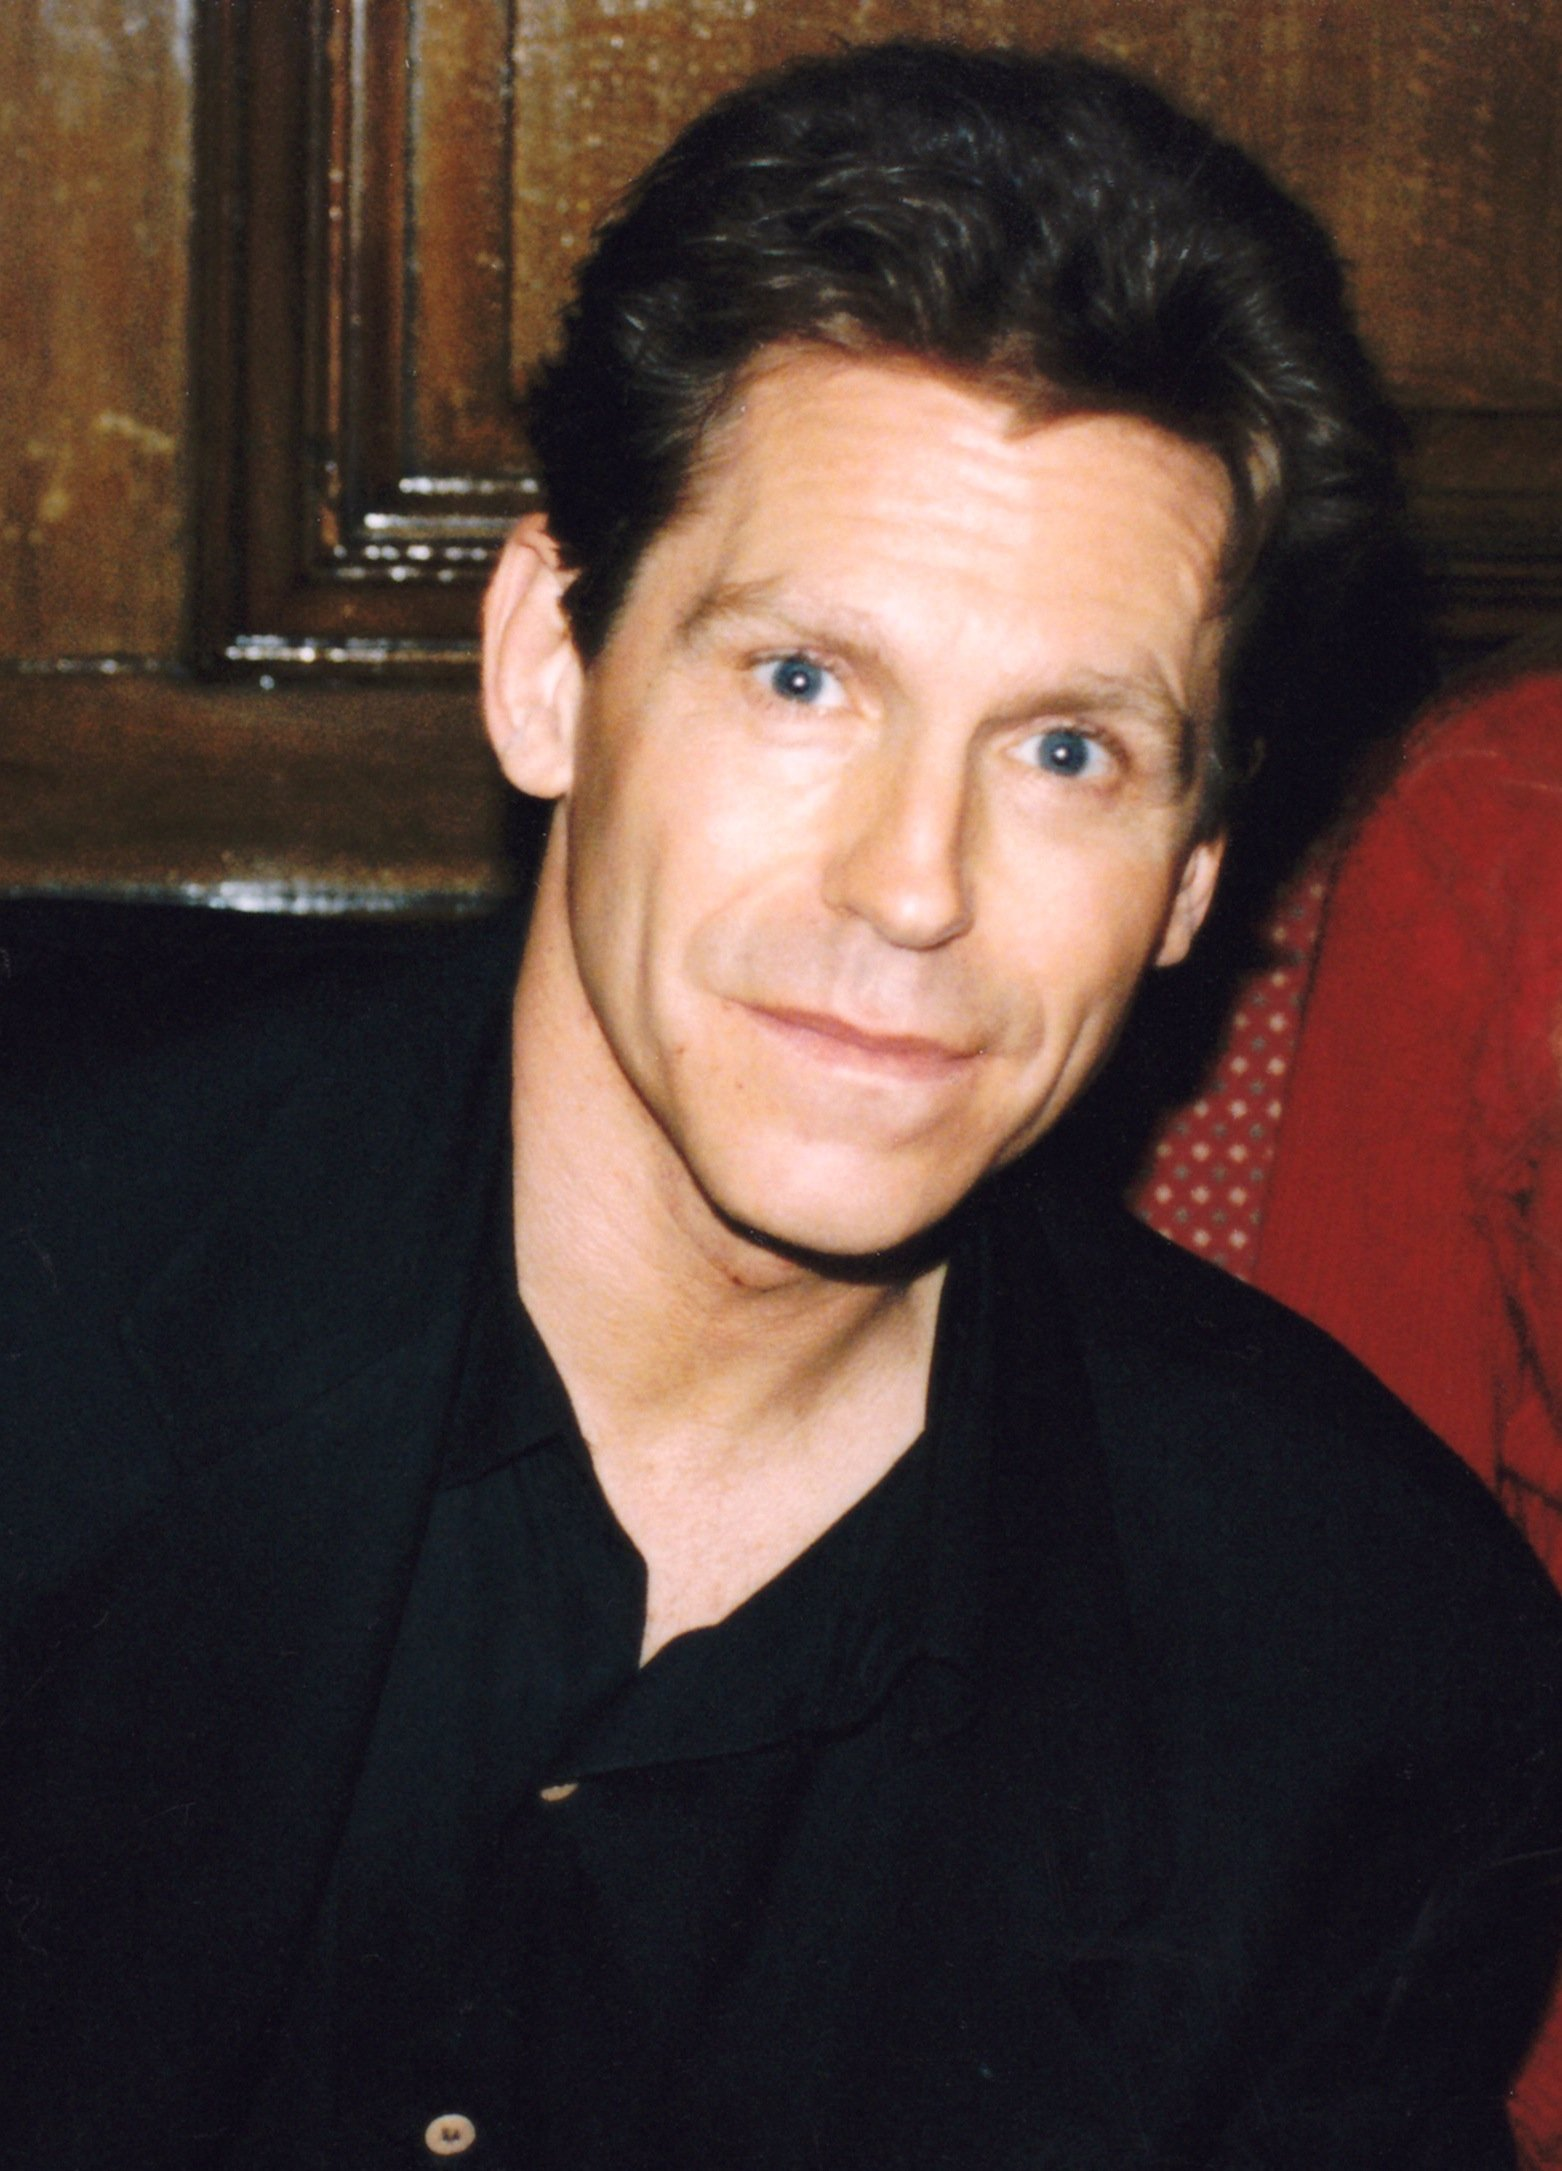 Jeff Conaway bei einer TV-Versammlung 1998   Quelle: CC BY-SA 2.0, Wikimedia Commons Images